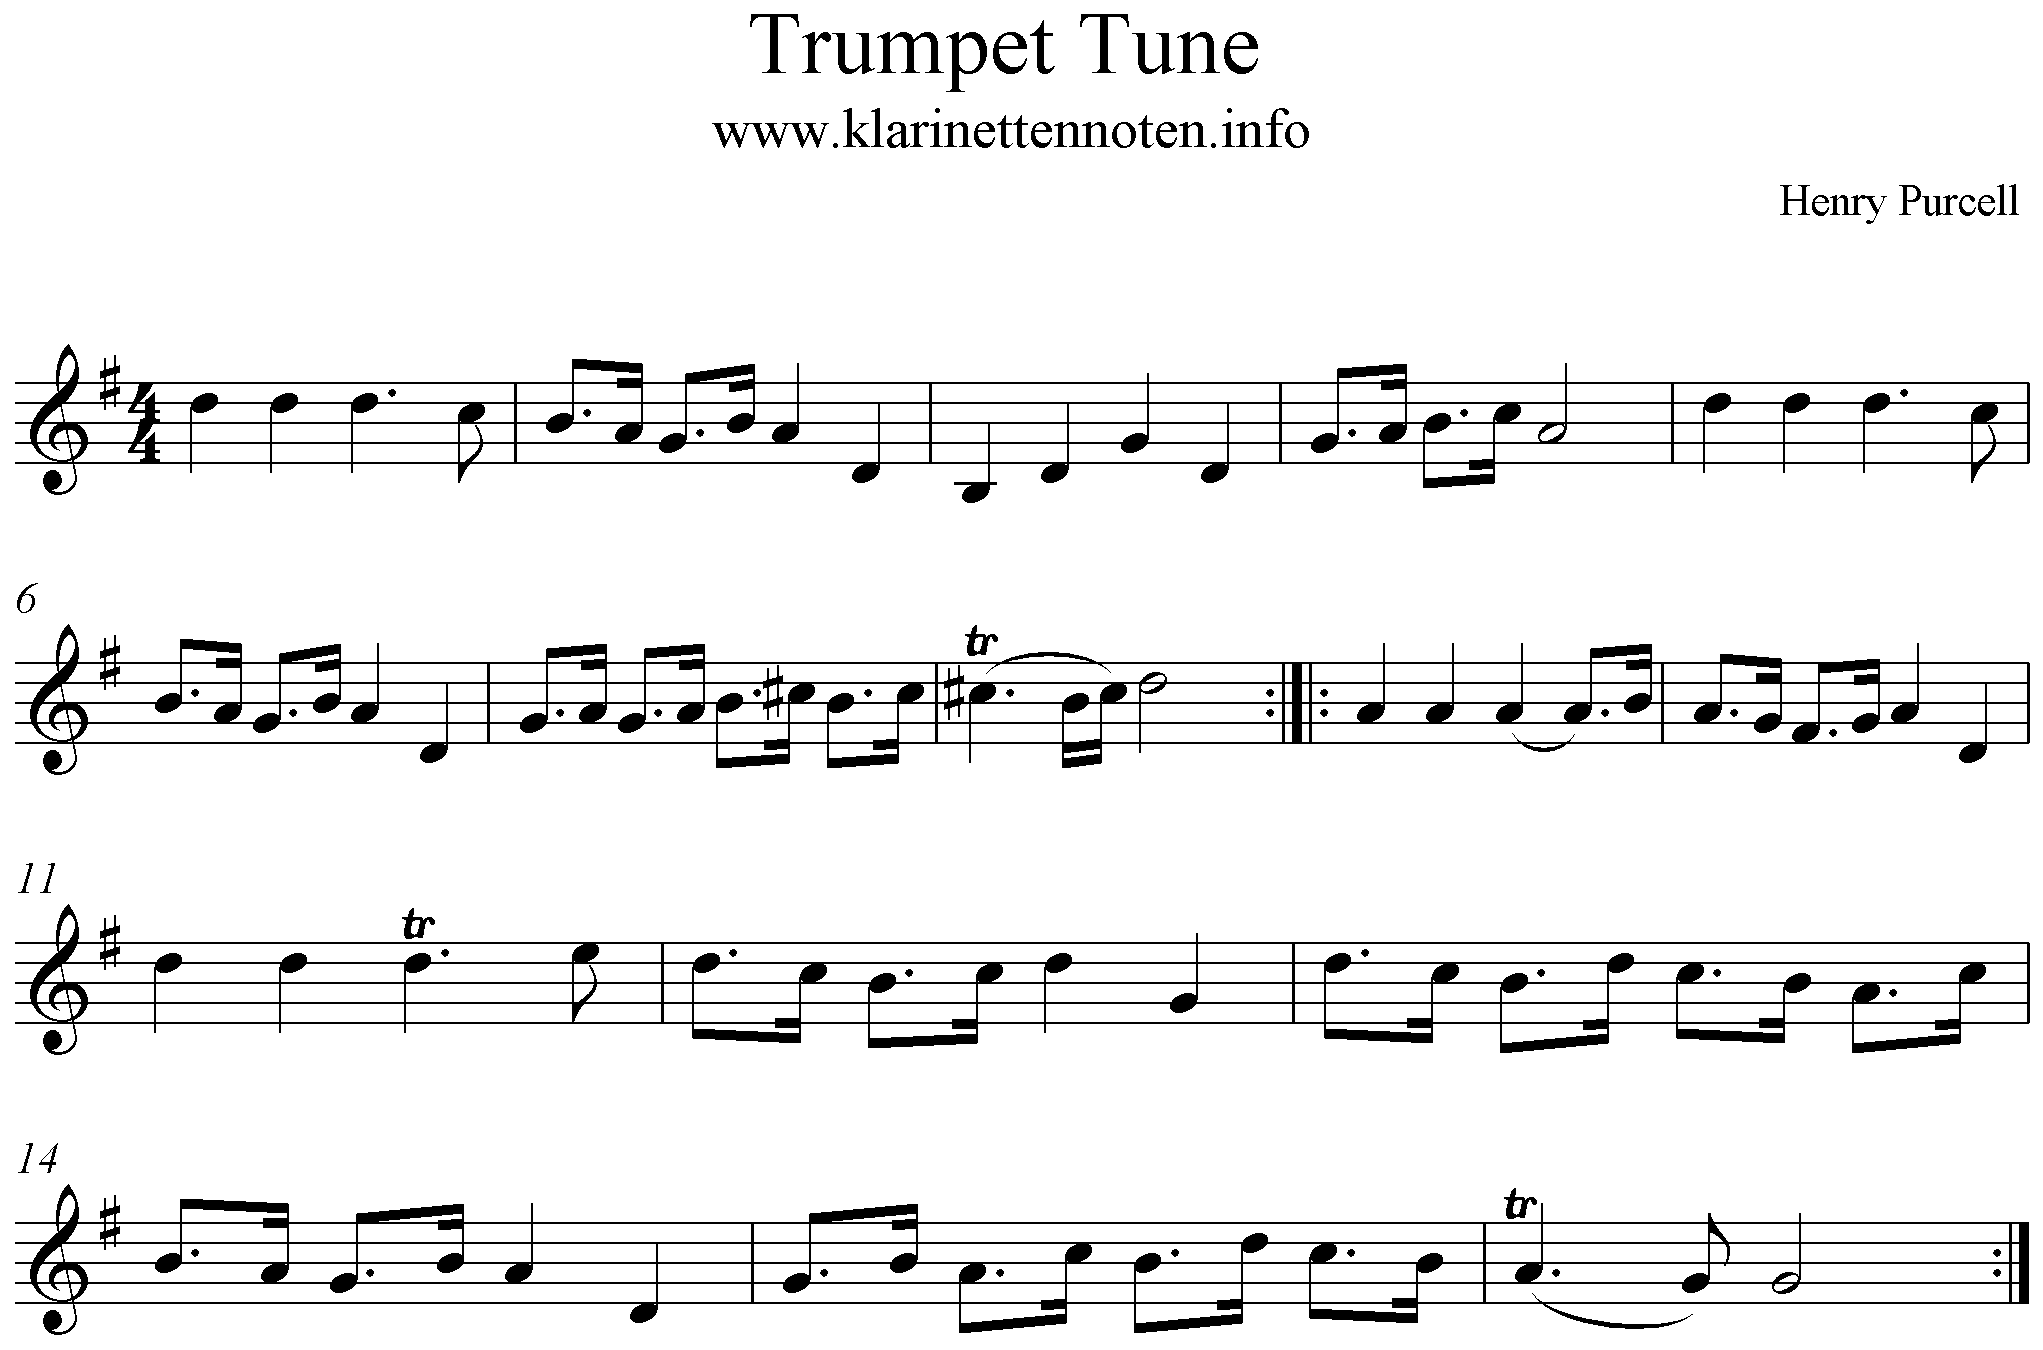 Trumpet Tune - Freesheet music Clarinet